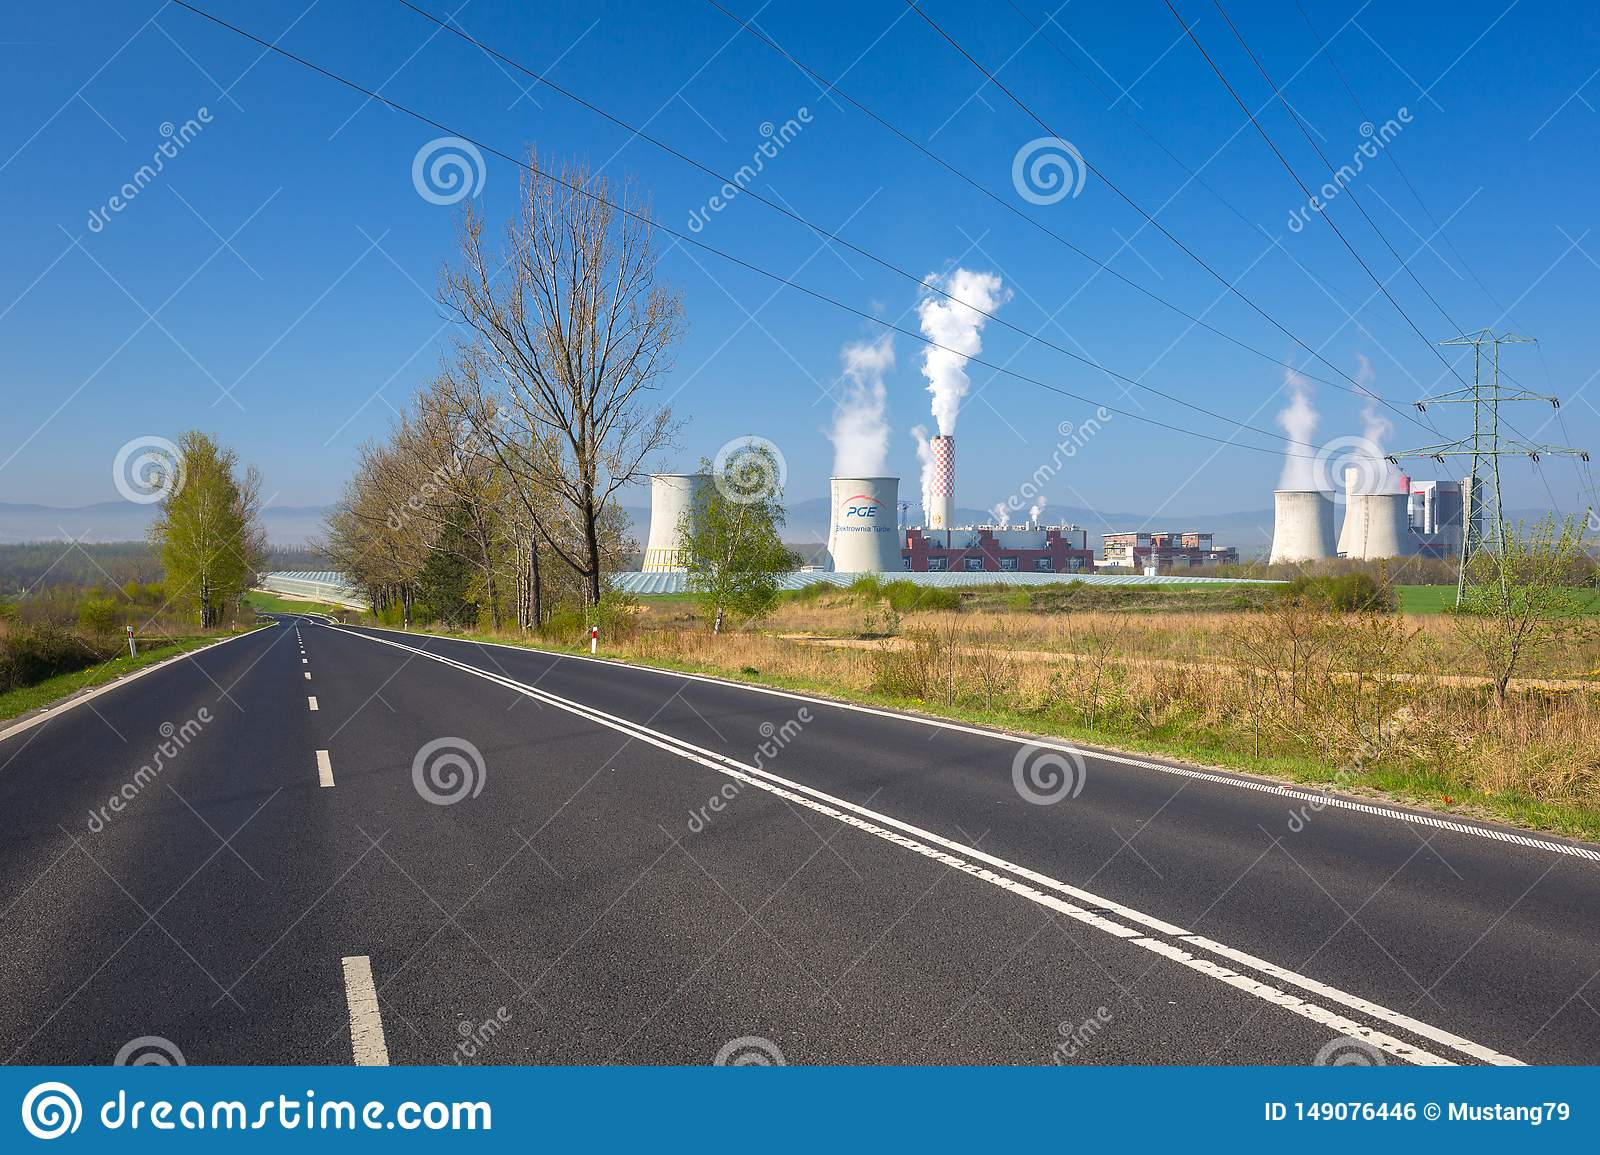 Bogatynia, Poland - April 20, 2019: Turow Thermal Power Station in Bogatynia, Poland. This is the modern brown coal thermal power